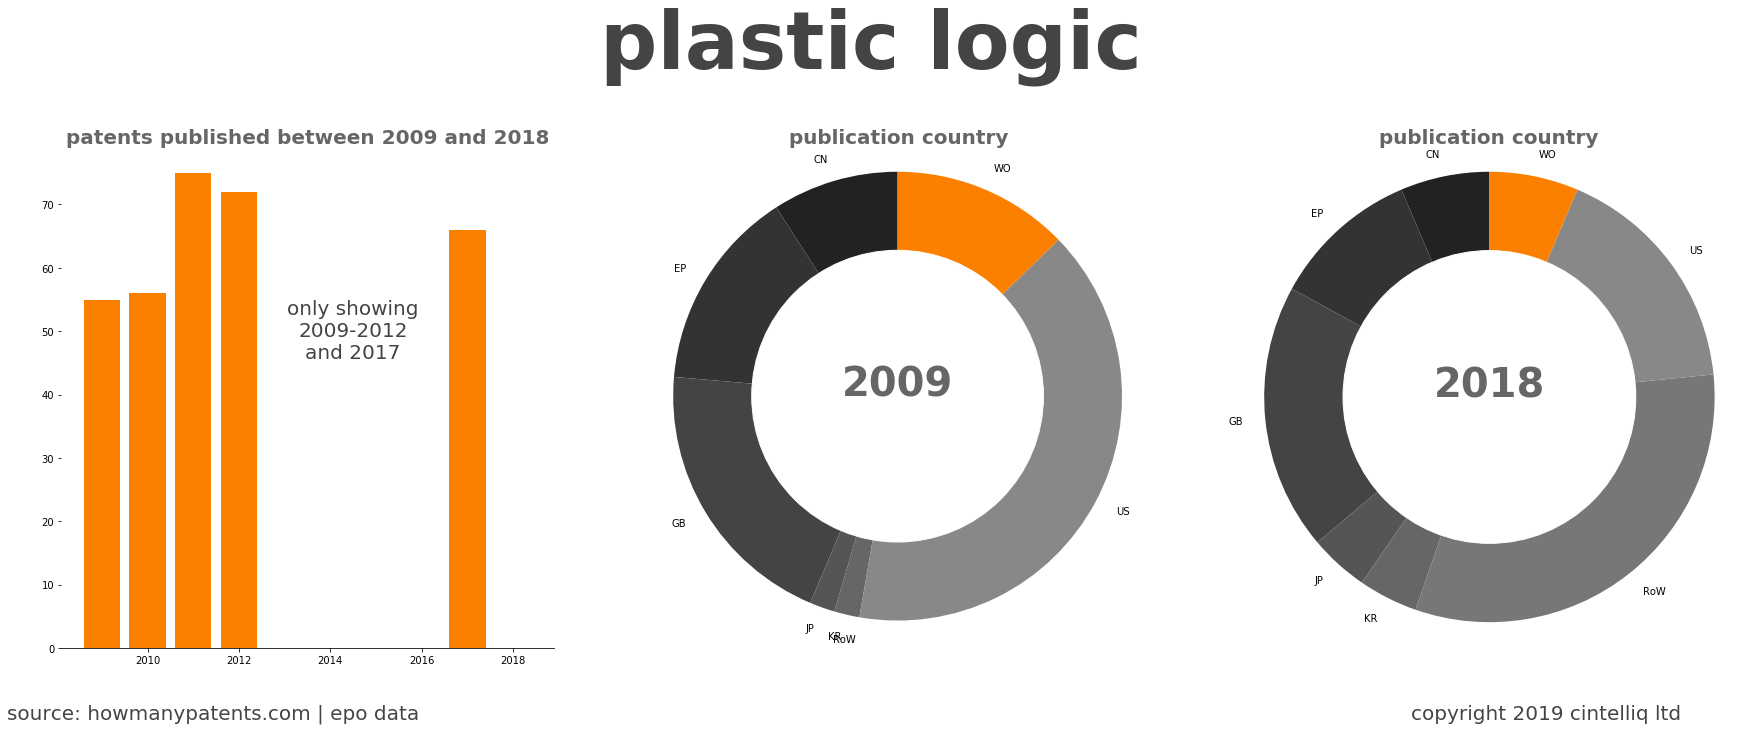 summary of patents for Plastic Logic